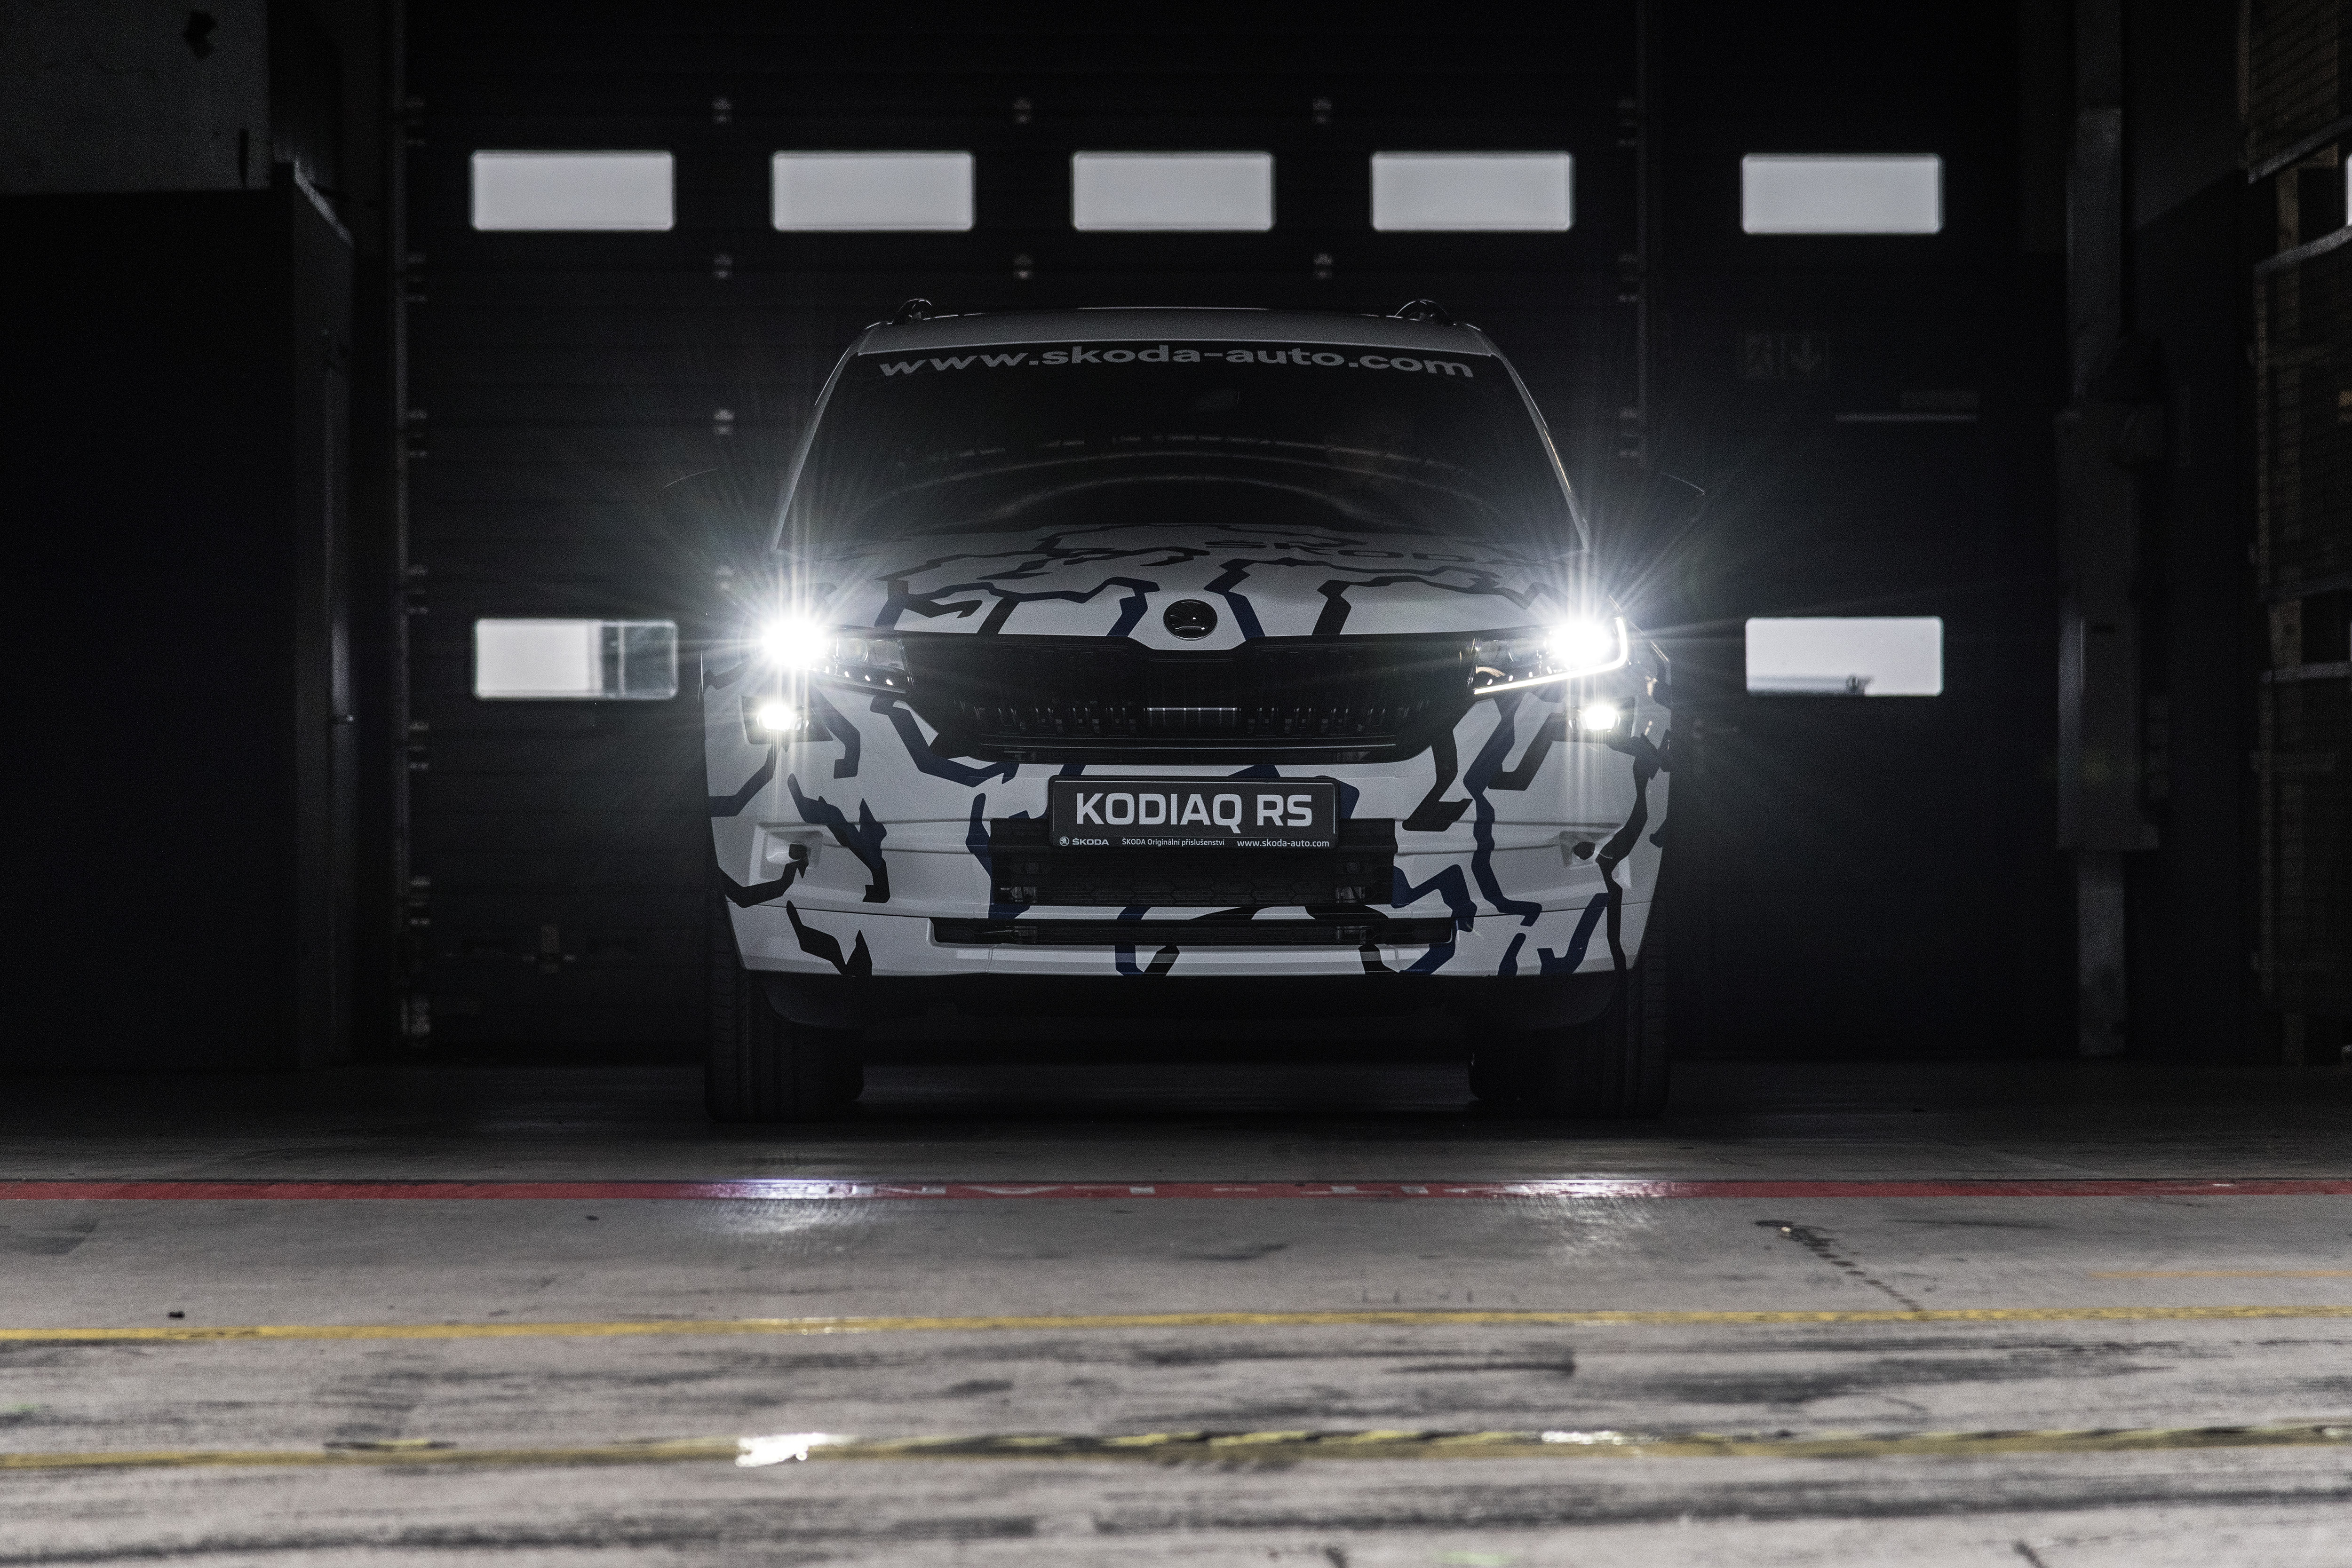 NEW ŠKODA KODIAQ RS COMPLETES RECORD-BREAKING LAP AT THE NÜRBURGRING